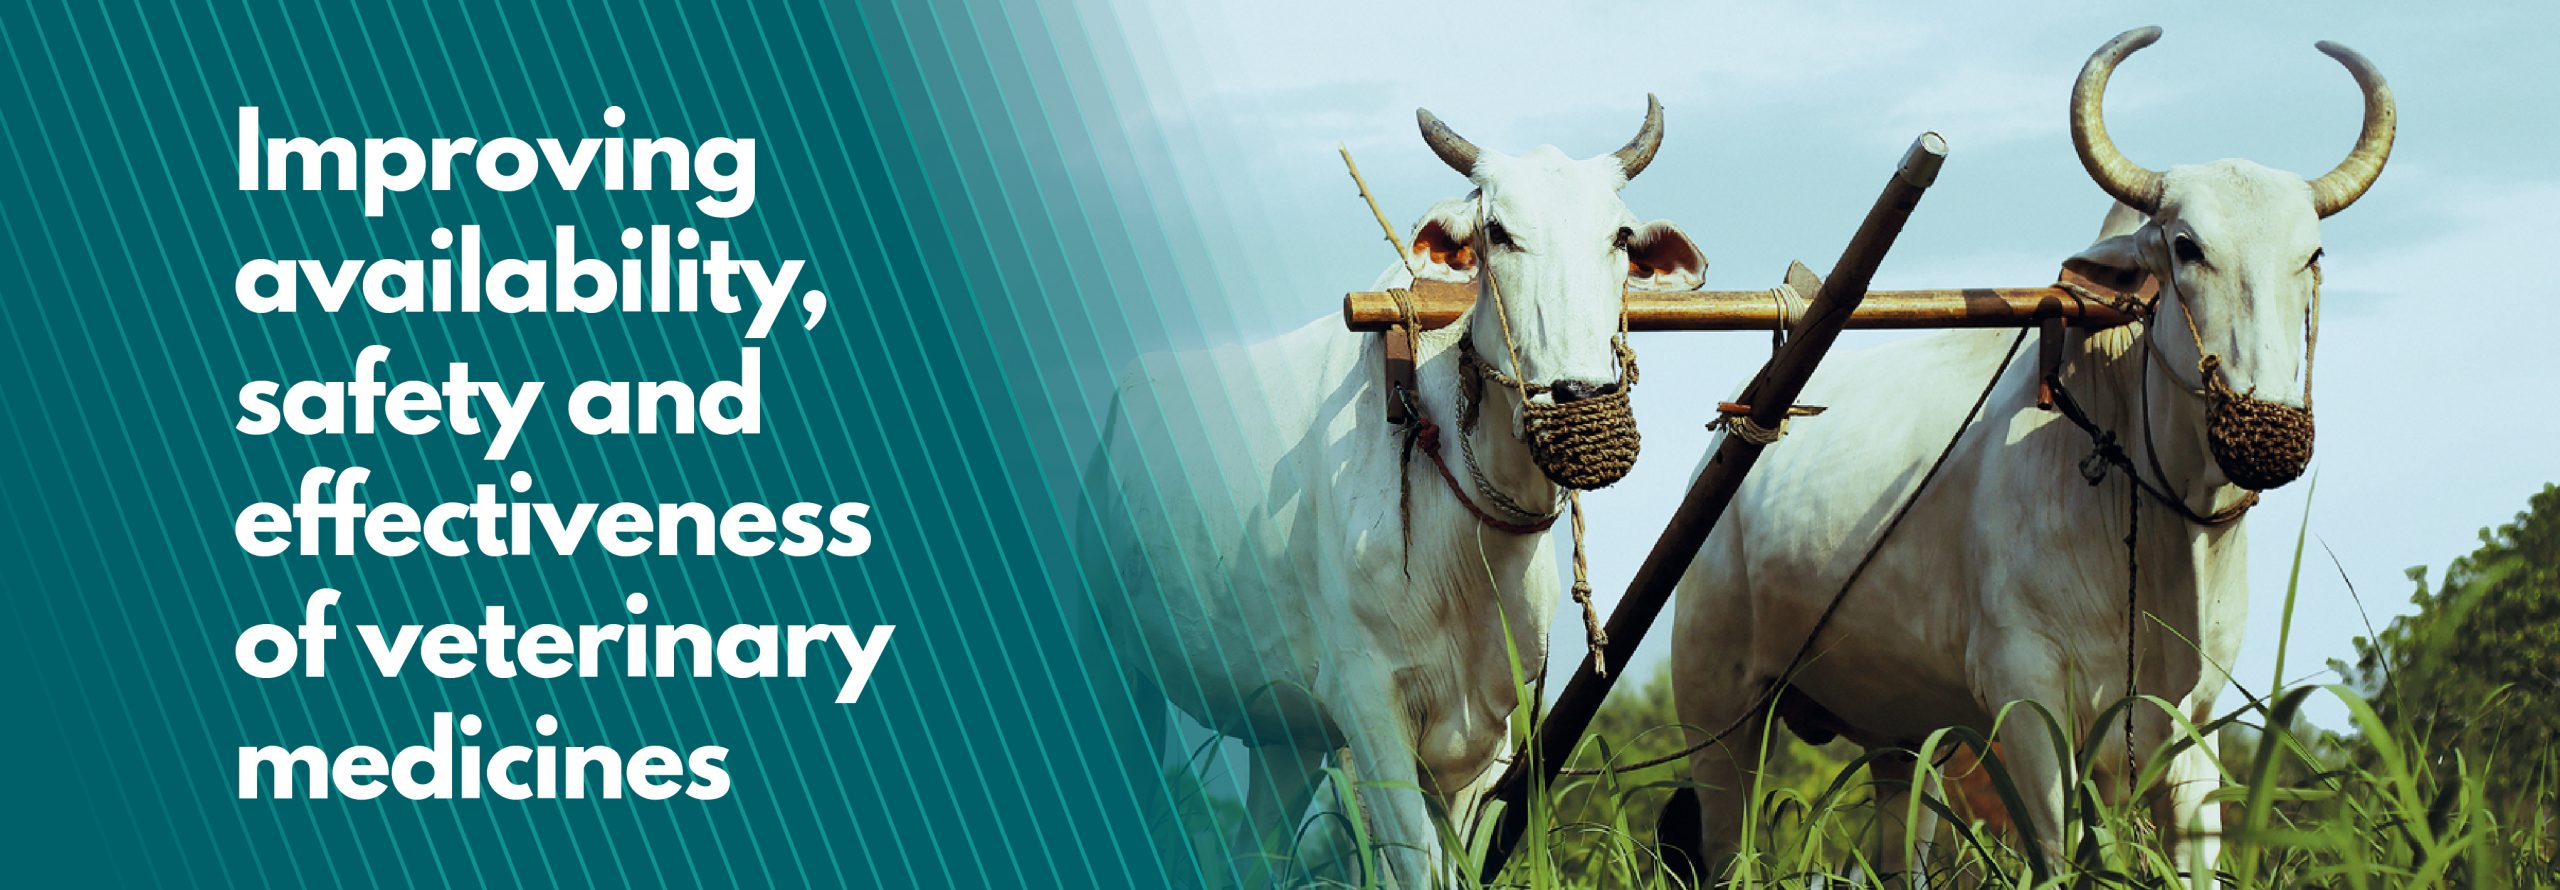 Improving availability, safety and effectiveness of veterinary medicines